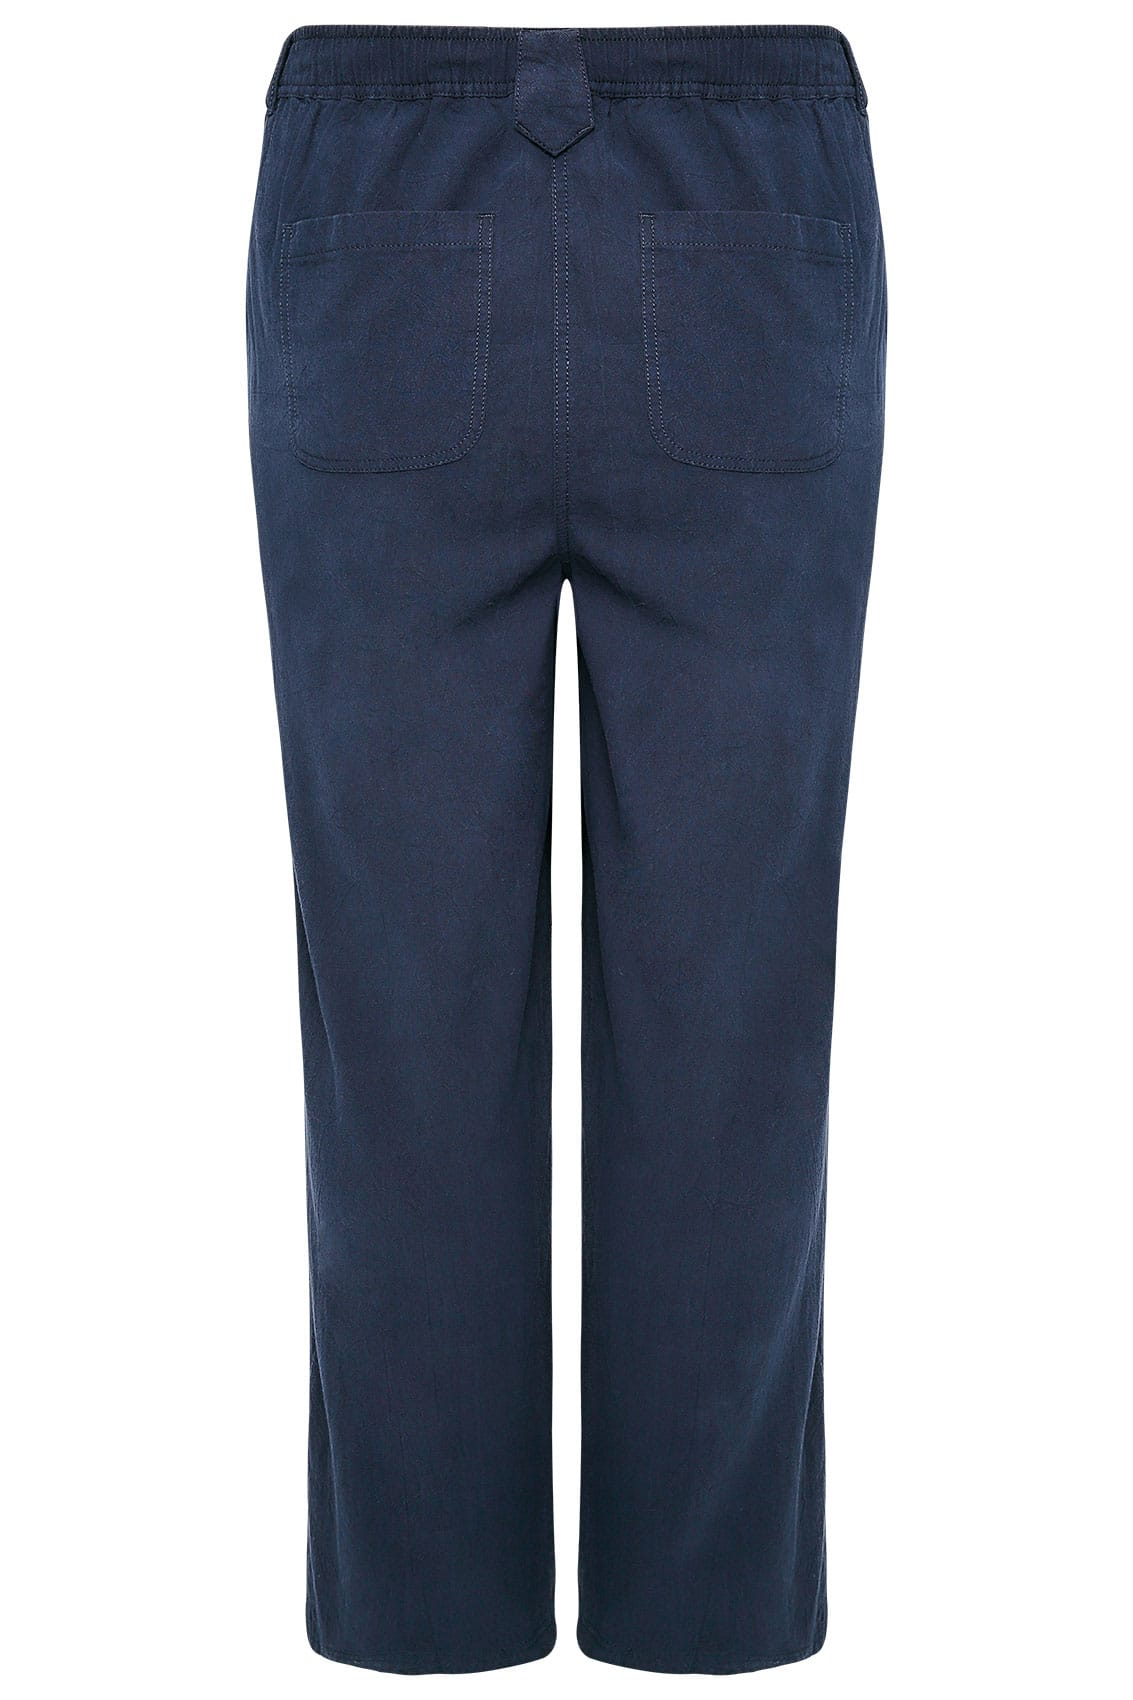 Navy Cool Cotton Pull On Wide Leg Trousers plus size 16 to 36